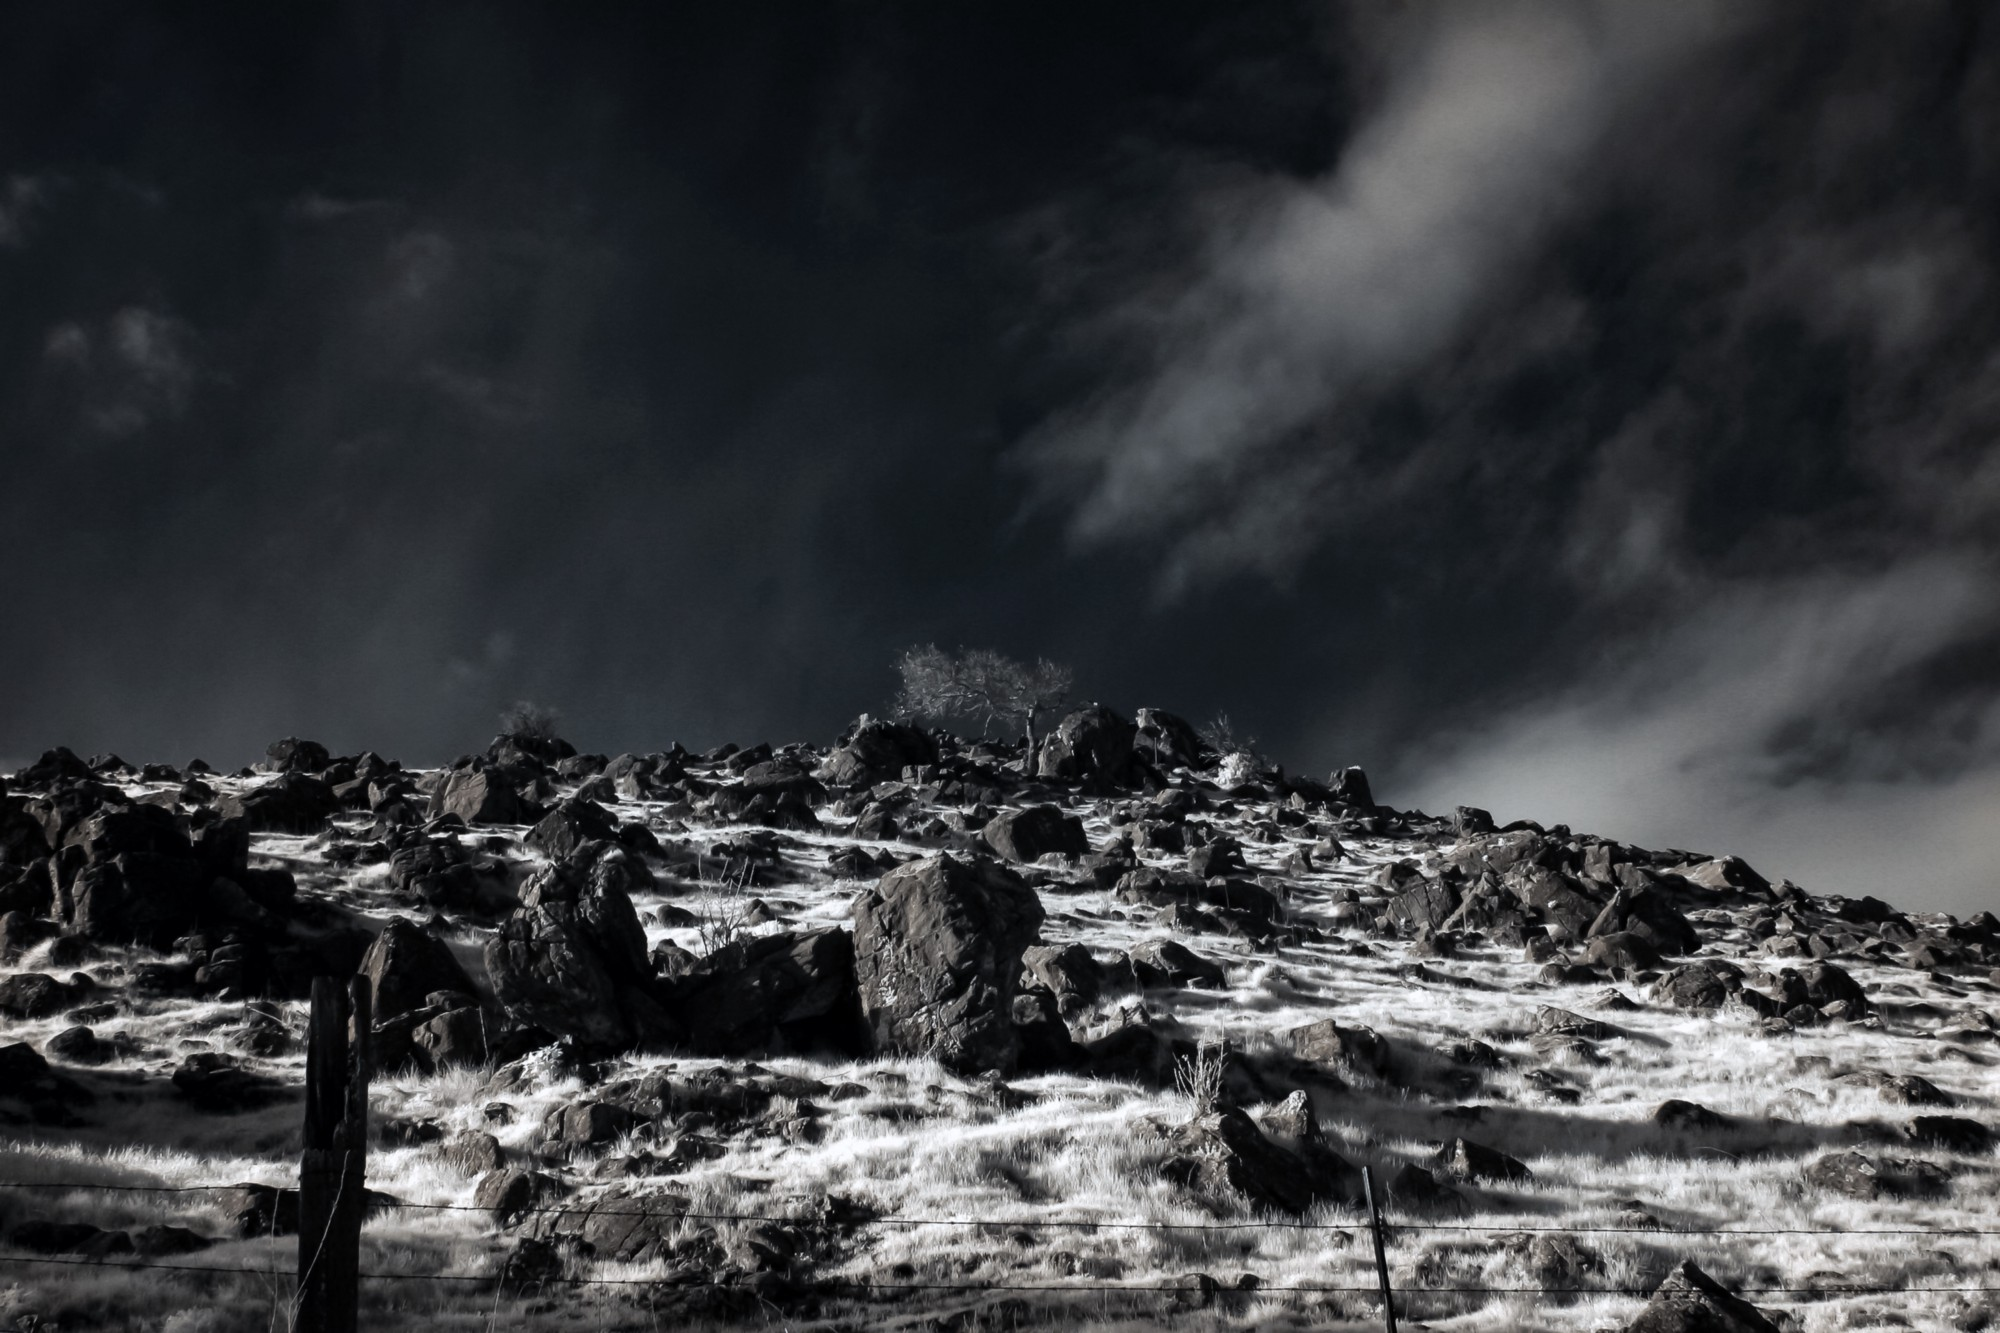 photo essay shooting digital infrared in winter light